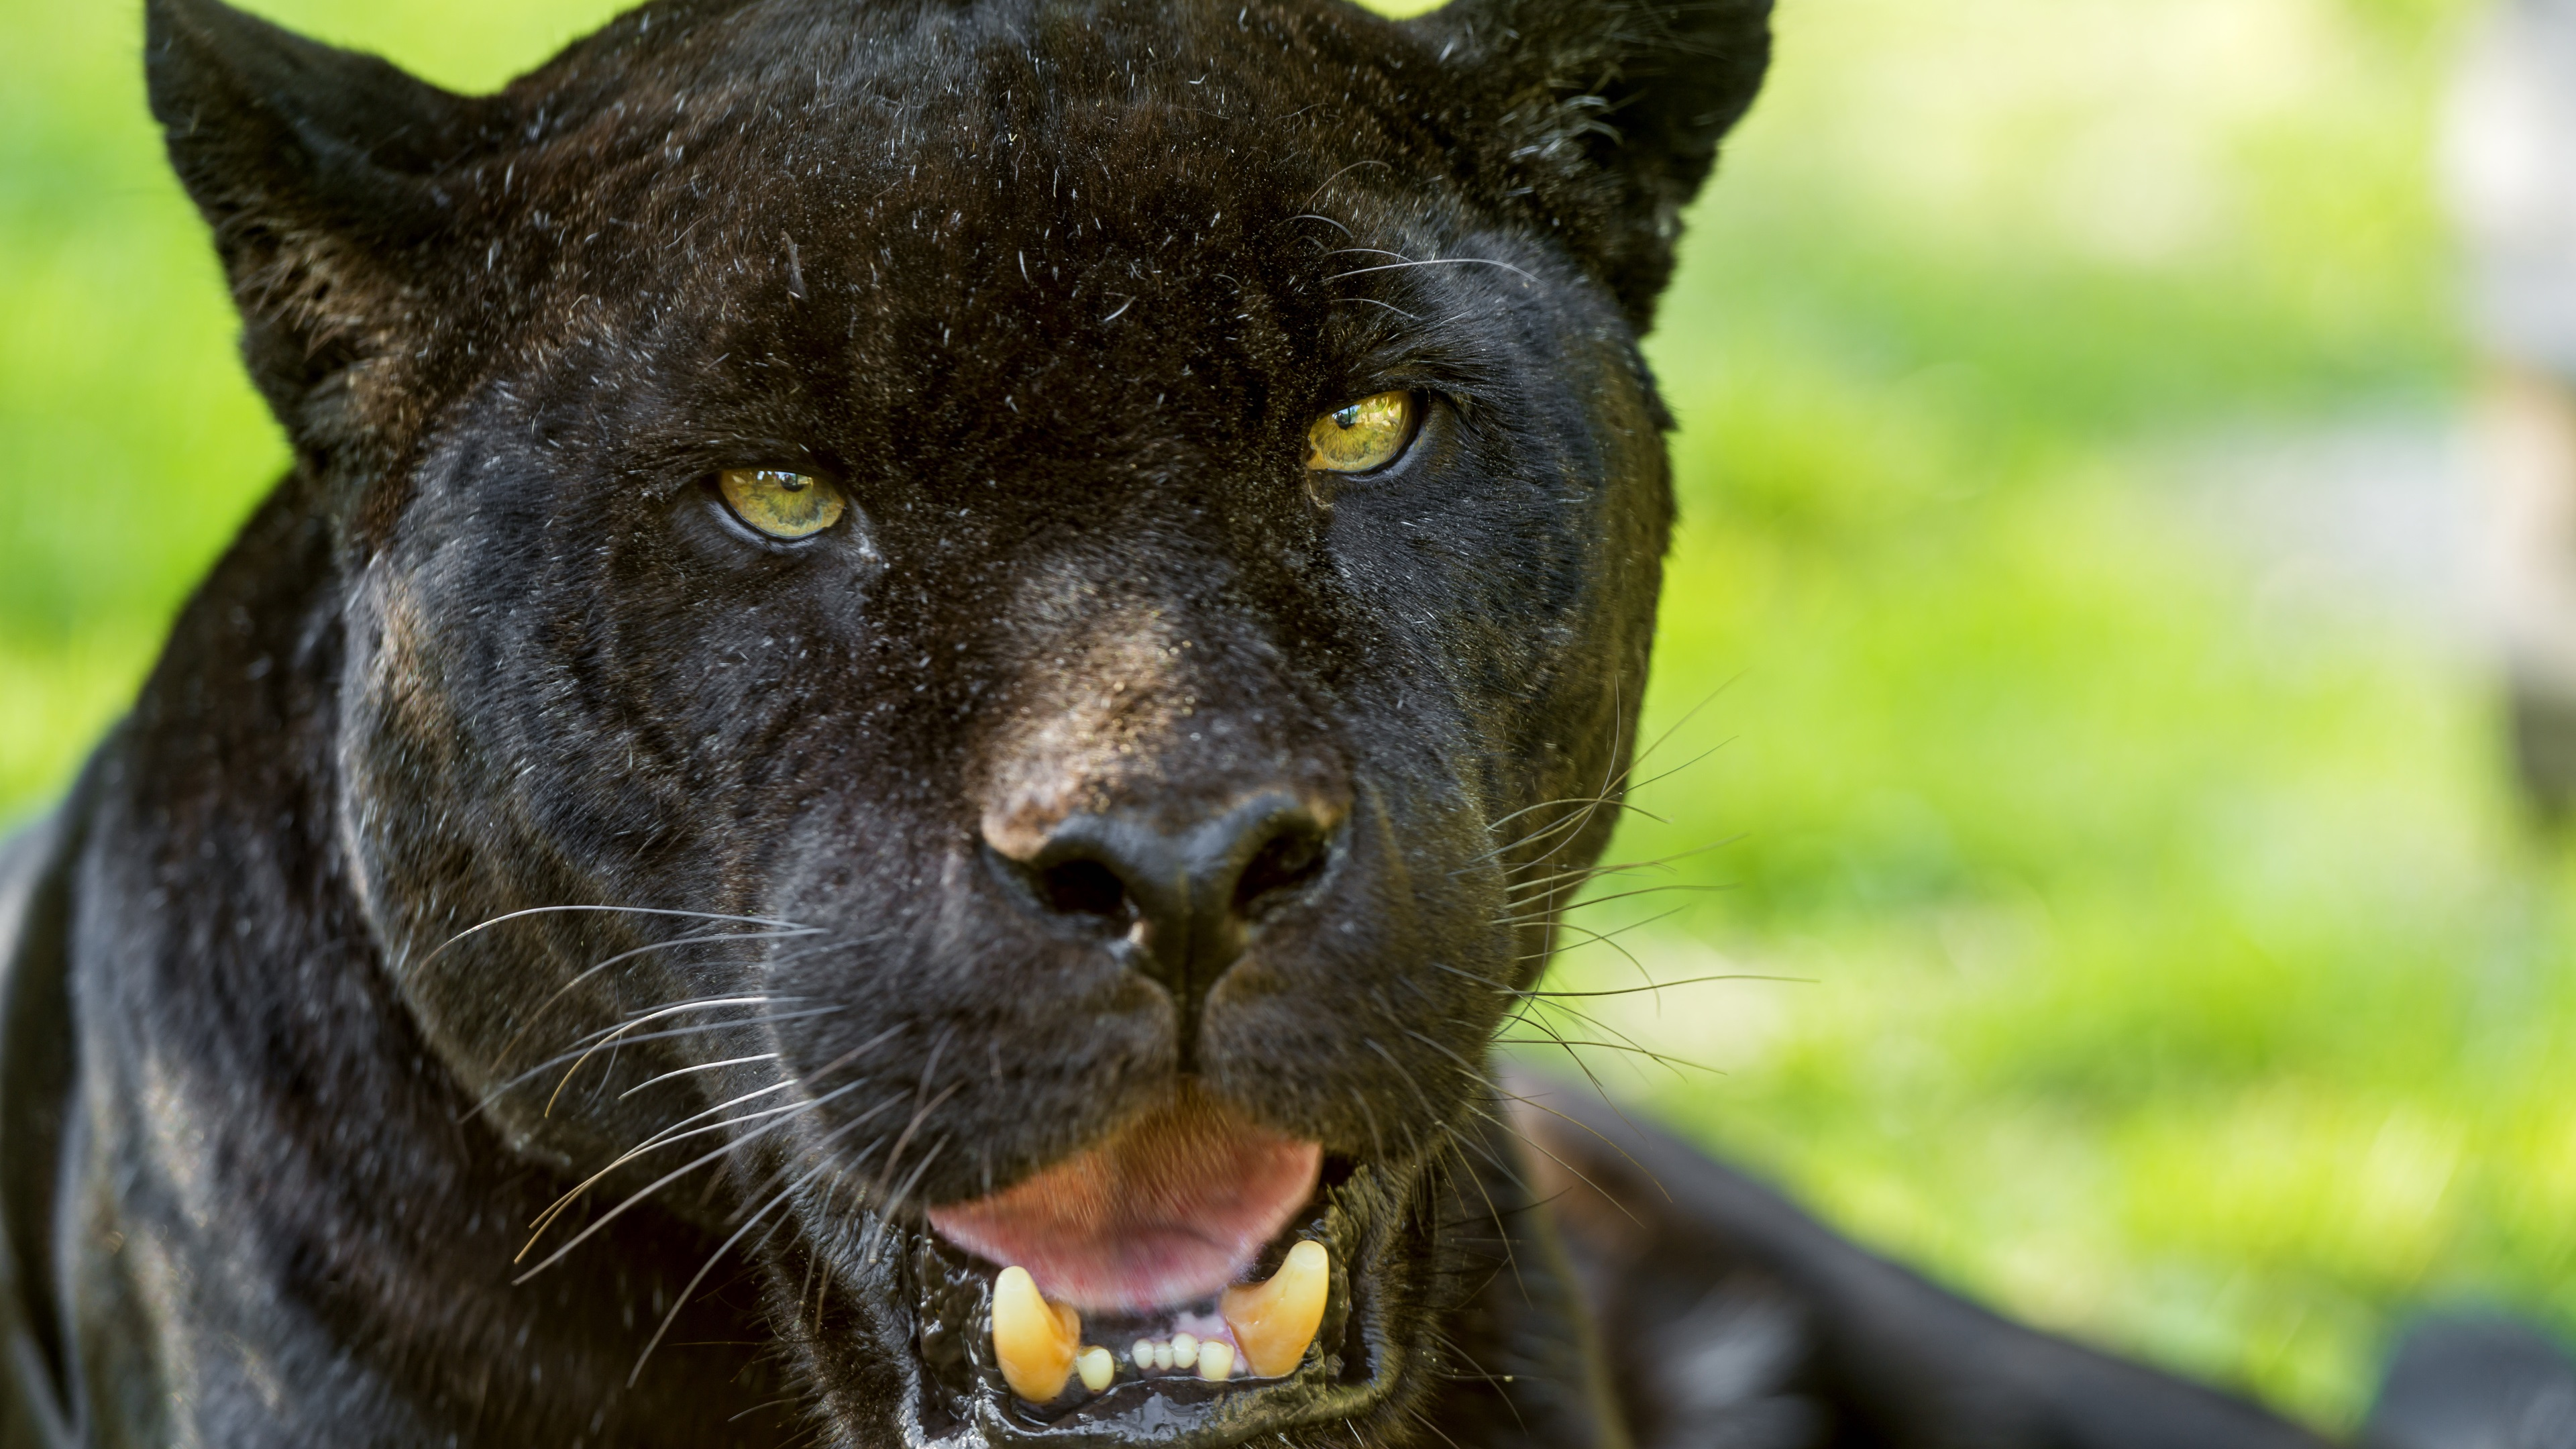 Wallpaper Black Jaguar Face Yellow Eyes 3840x2160 Uhd 4k Picture Image